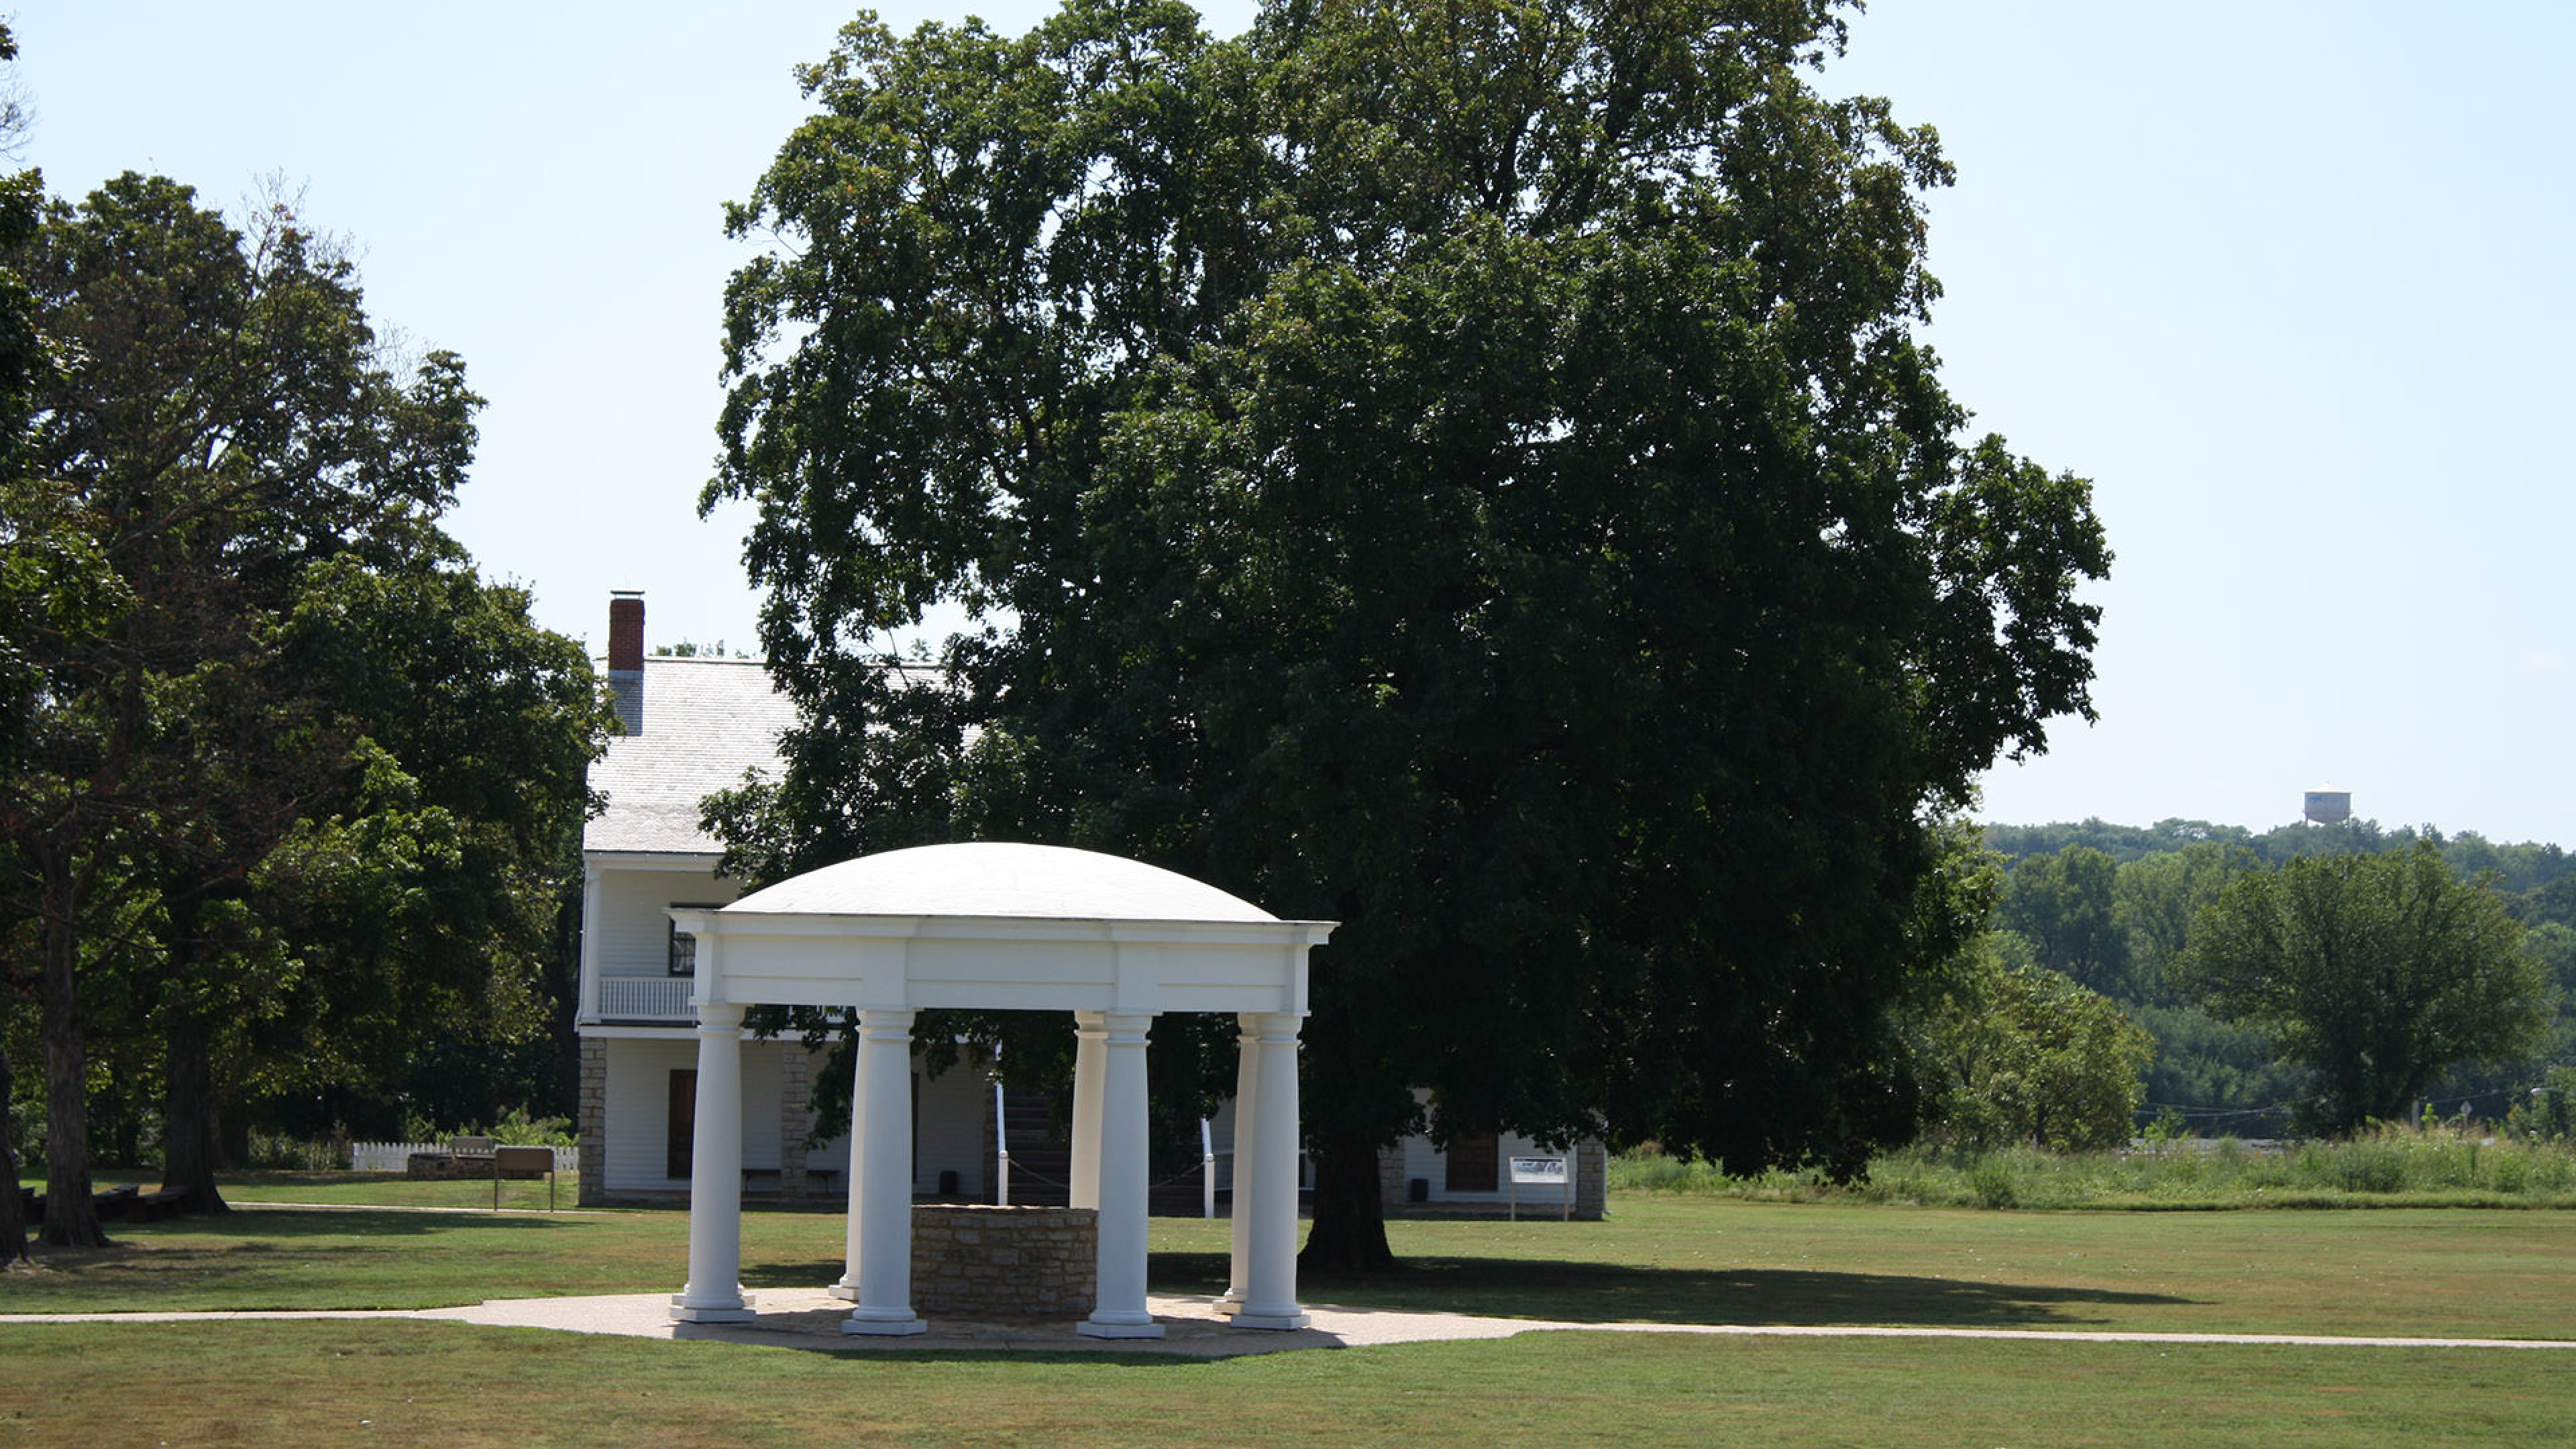 Gazebo at Fort Scott National Historic Site